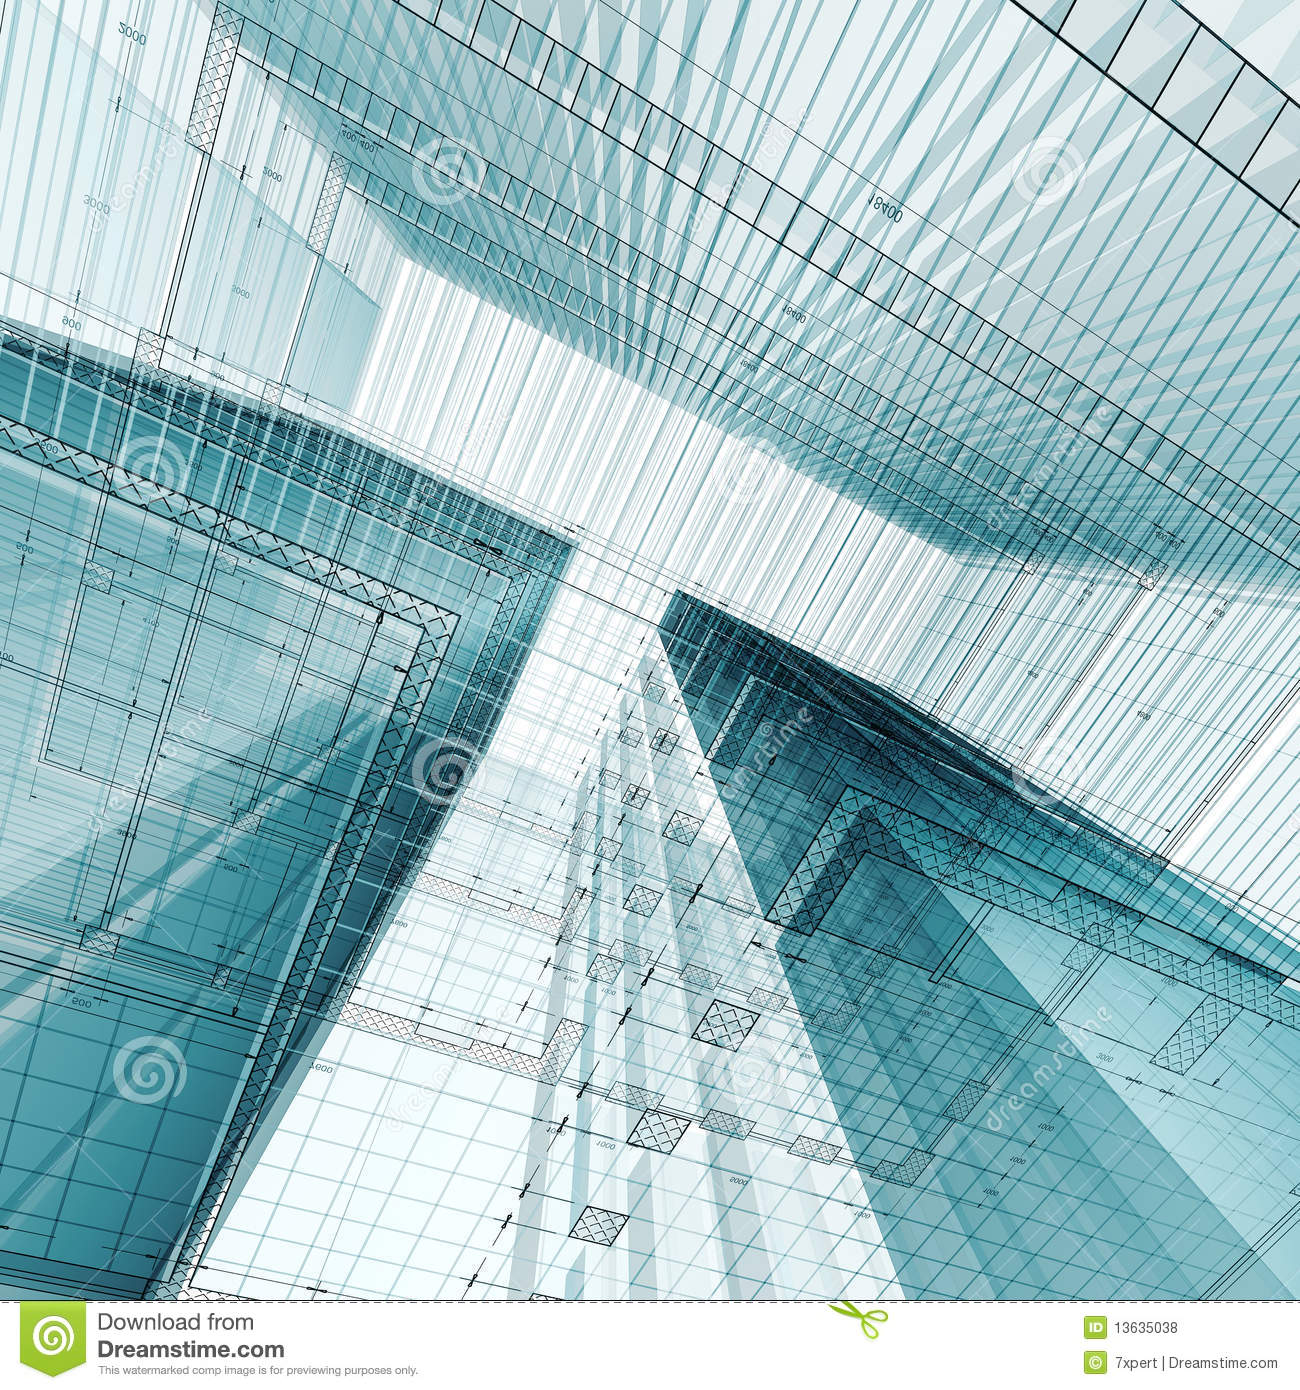 Architecture engineering royalty free stock photos image for Architectural engineering concepts